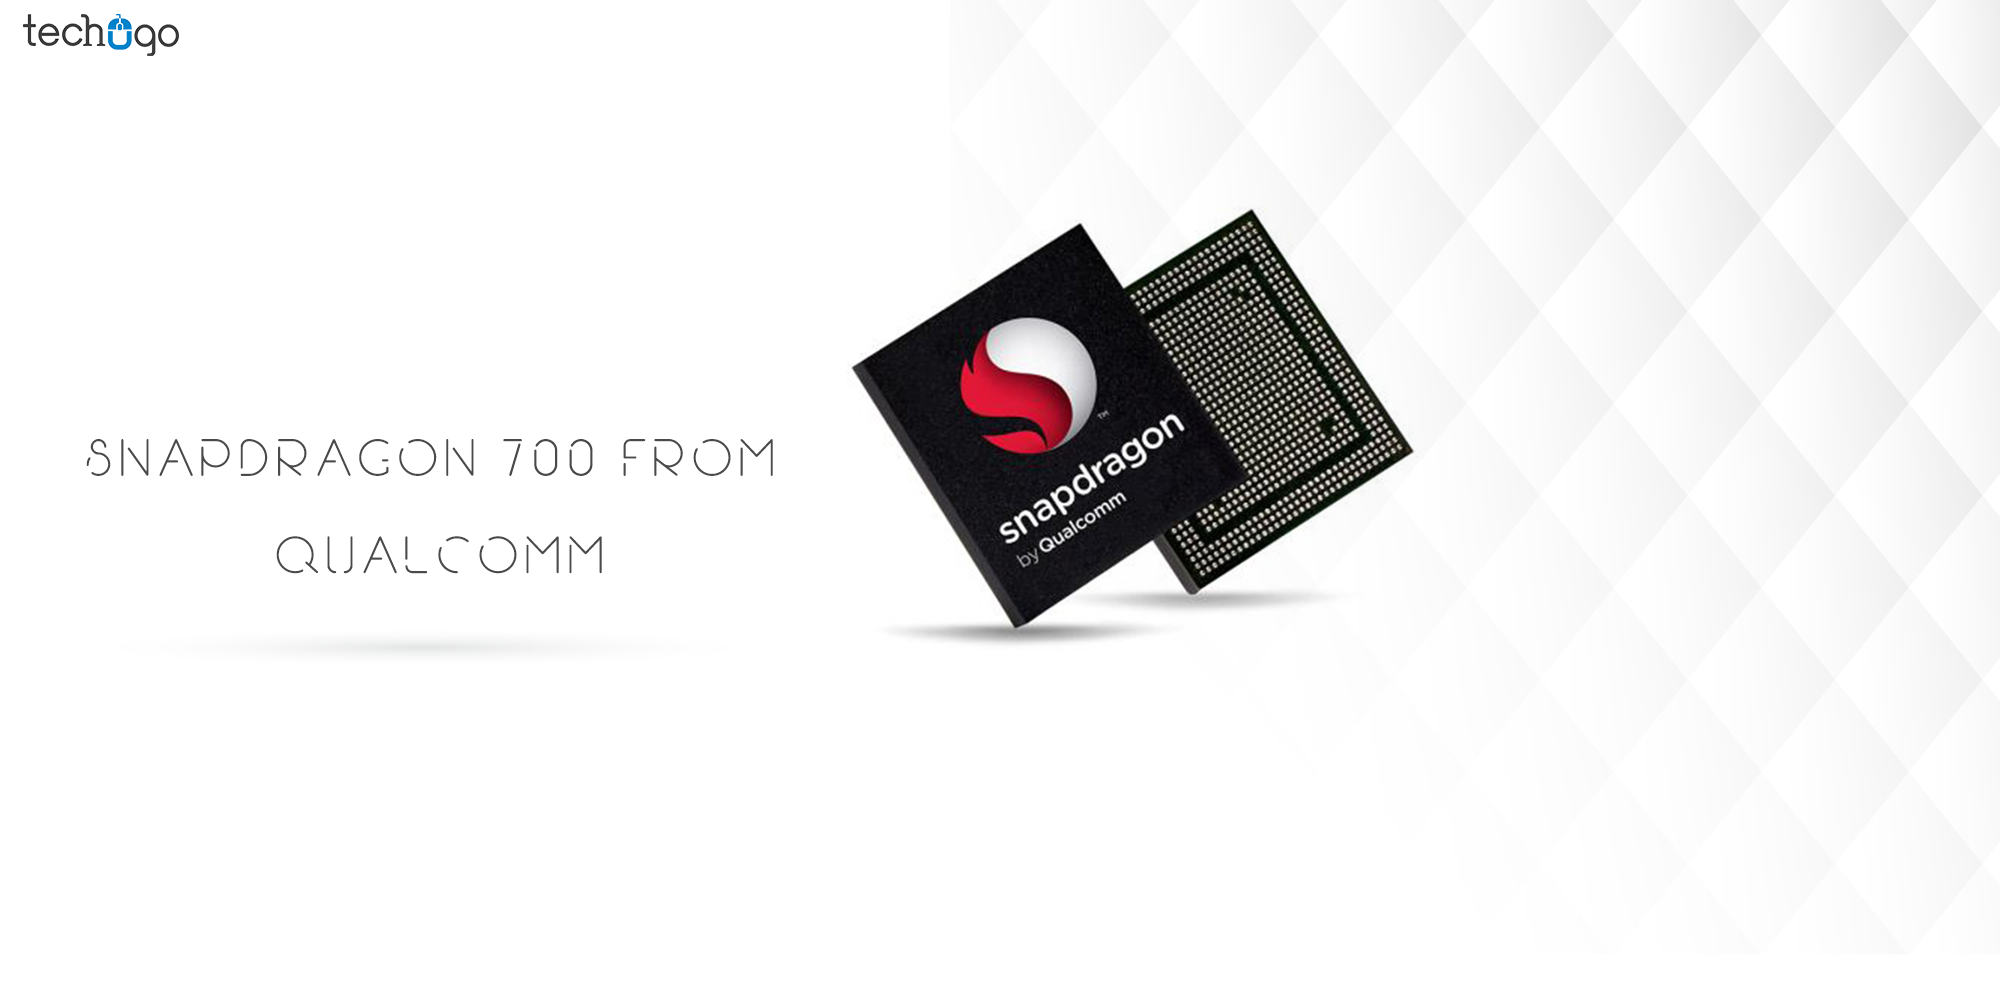 Snapdragon 700 From Qualcomm